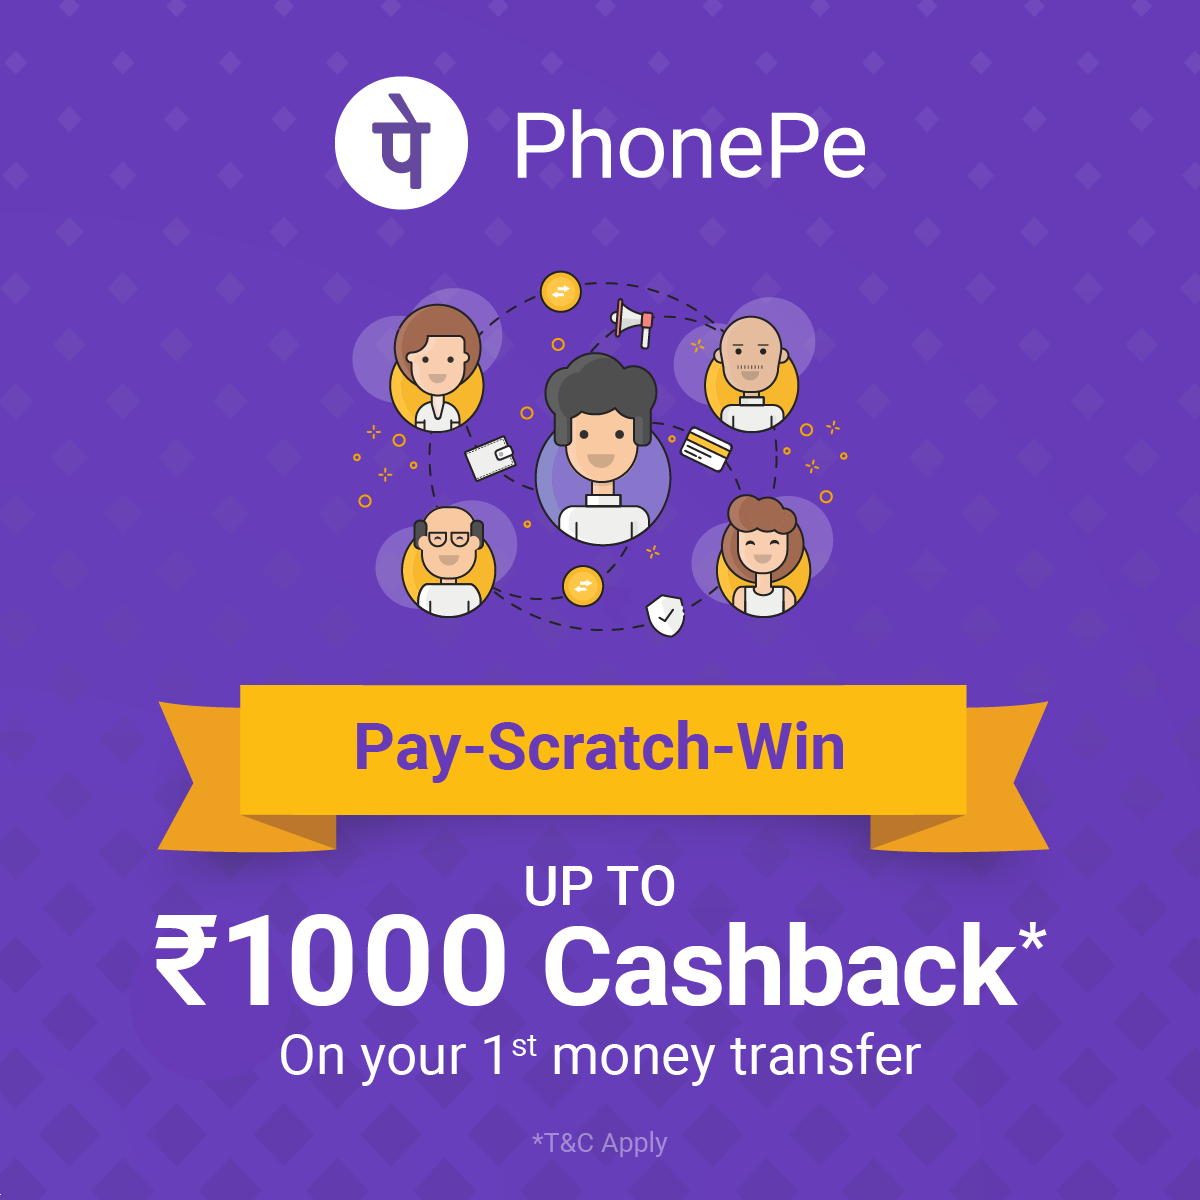 earn money - PhonePe Pay - Scratch - Win UP TO 31000 Cashback * On your 1st money transfer * T & C Apply - ShareChat